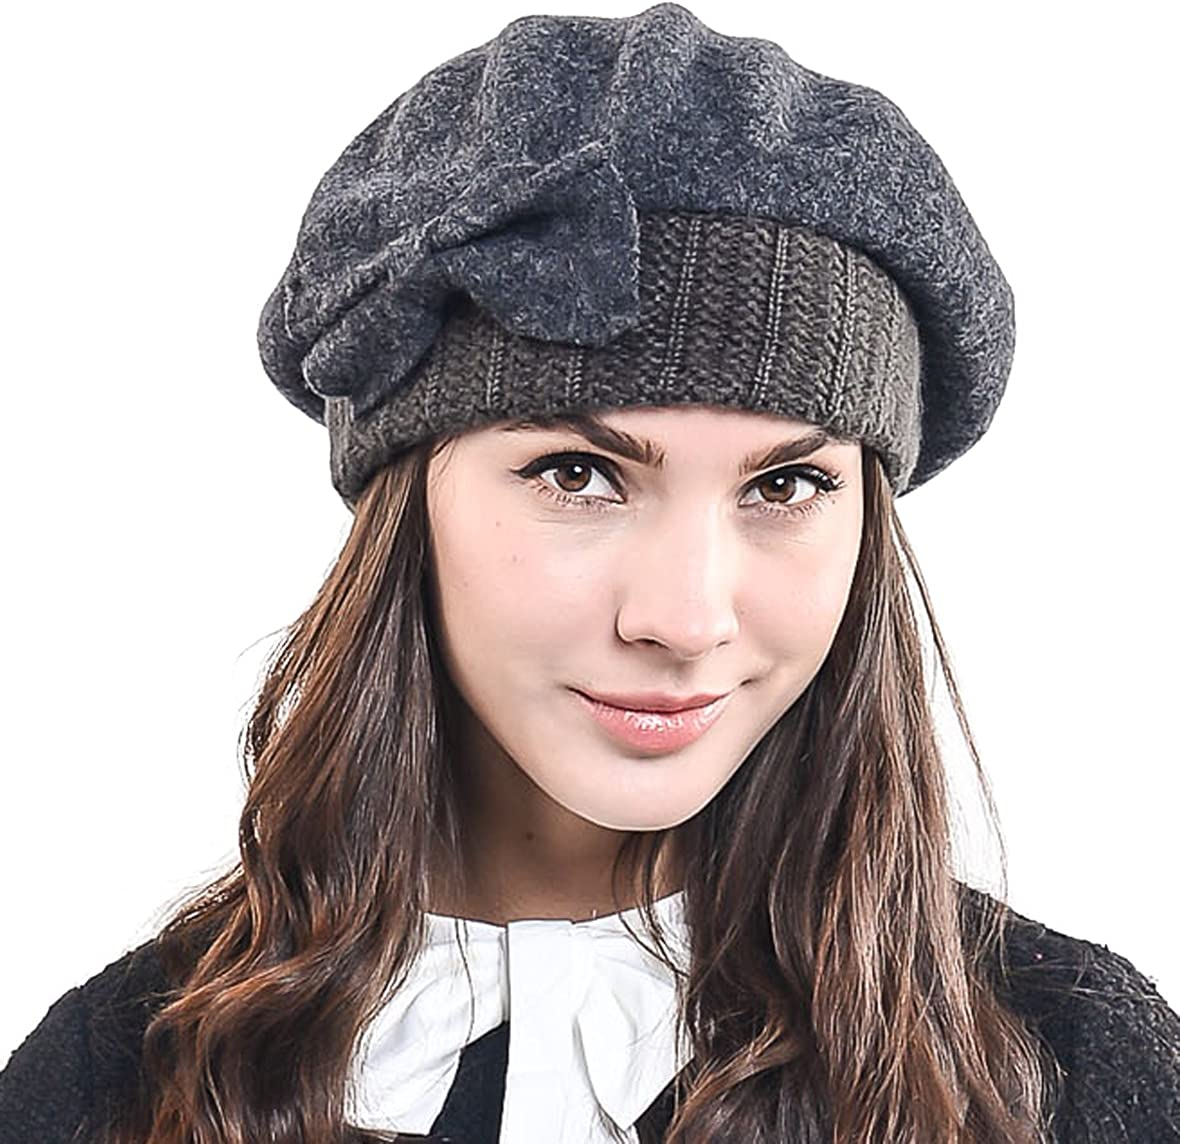 Lady French Beret Wool Beret Chic Beanie Winter Hat with Bow